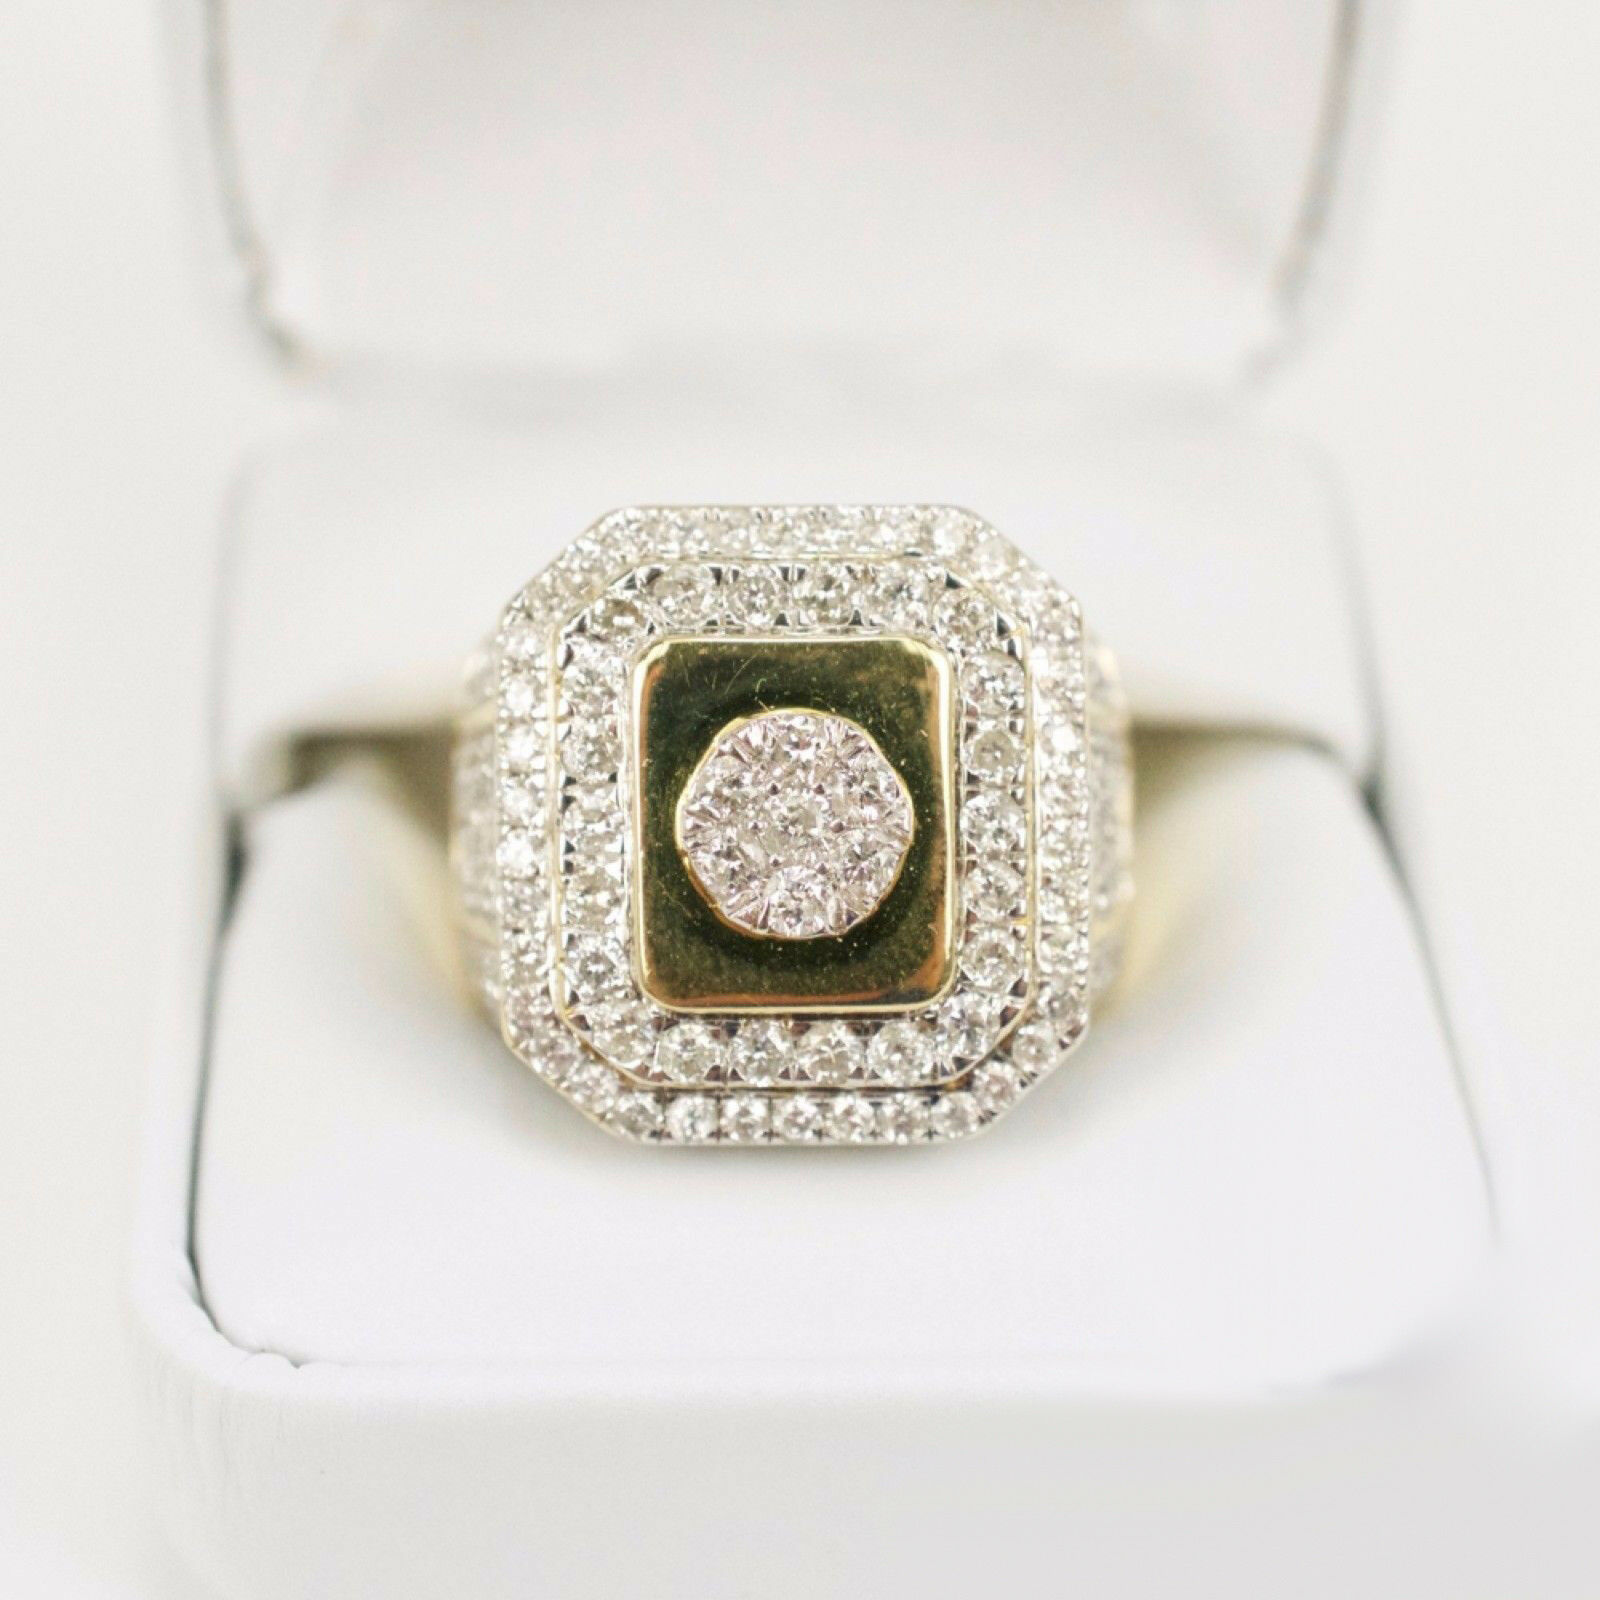 1.99Ct ROUND CUT DIAMOND 14K YELLOW GOLD OVER MENS PINKY WEDDING BAND RING